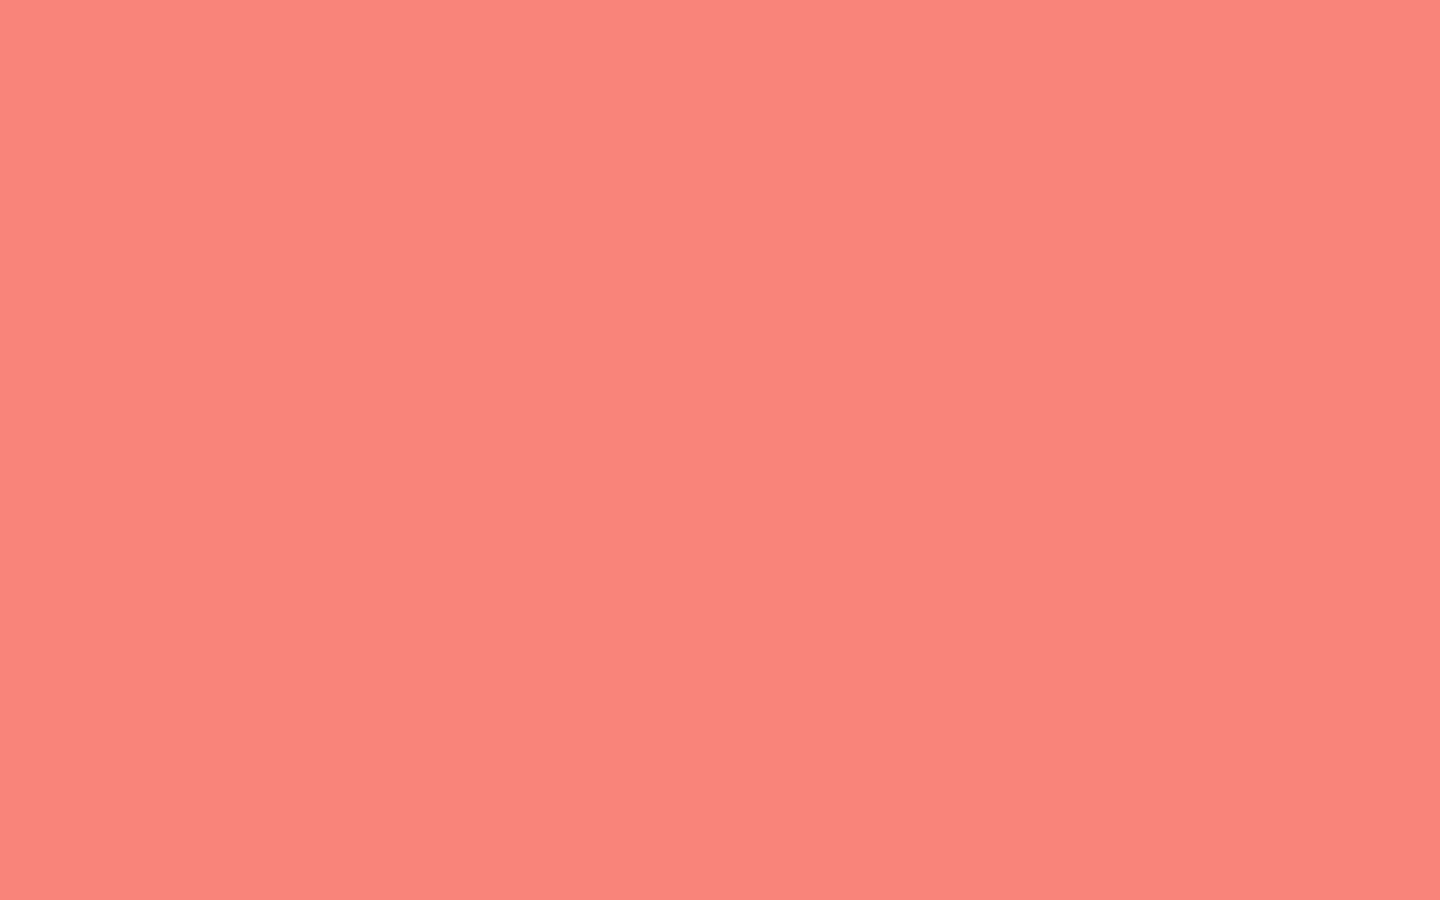 1440x900 Coral Pink Solid Color Background